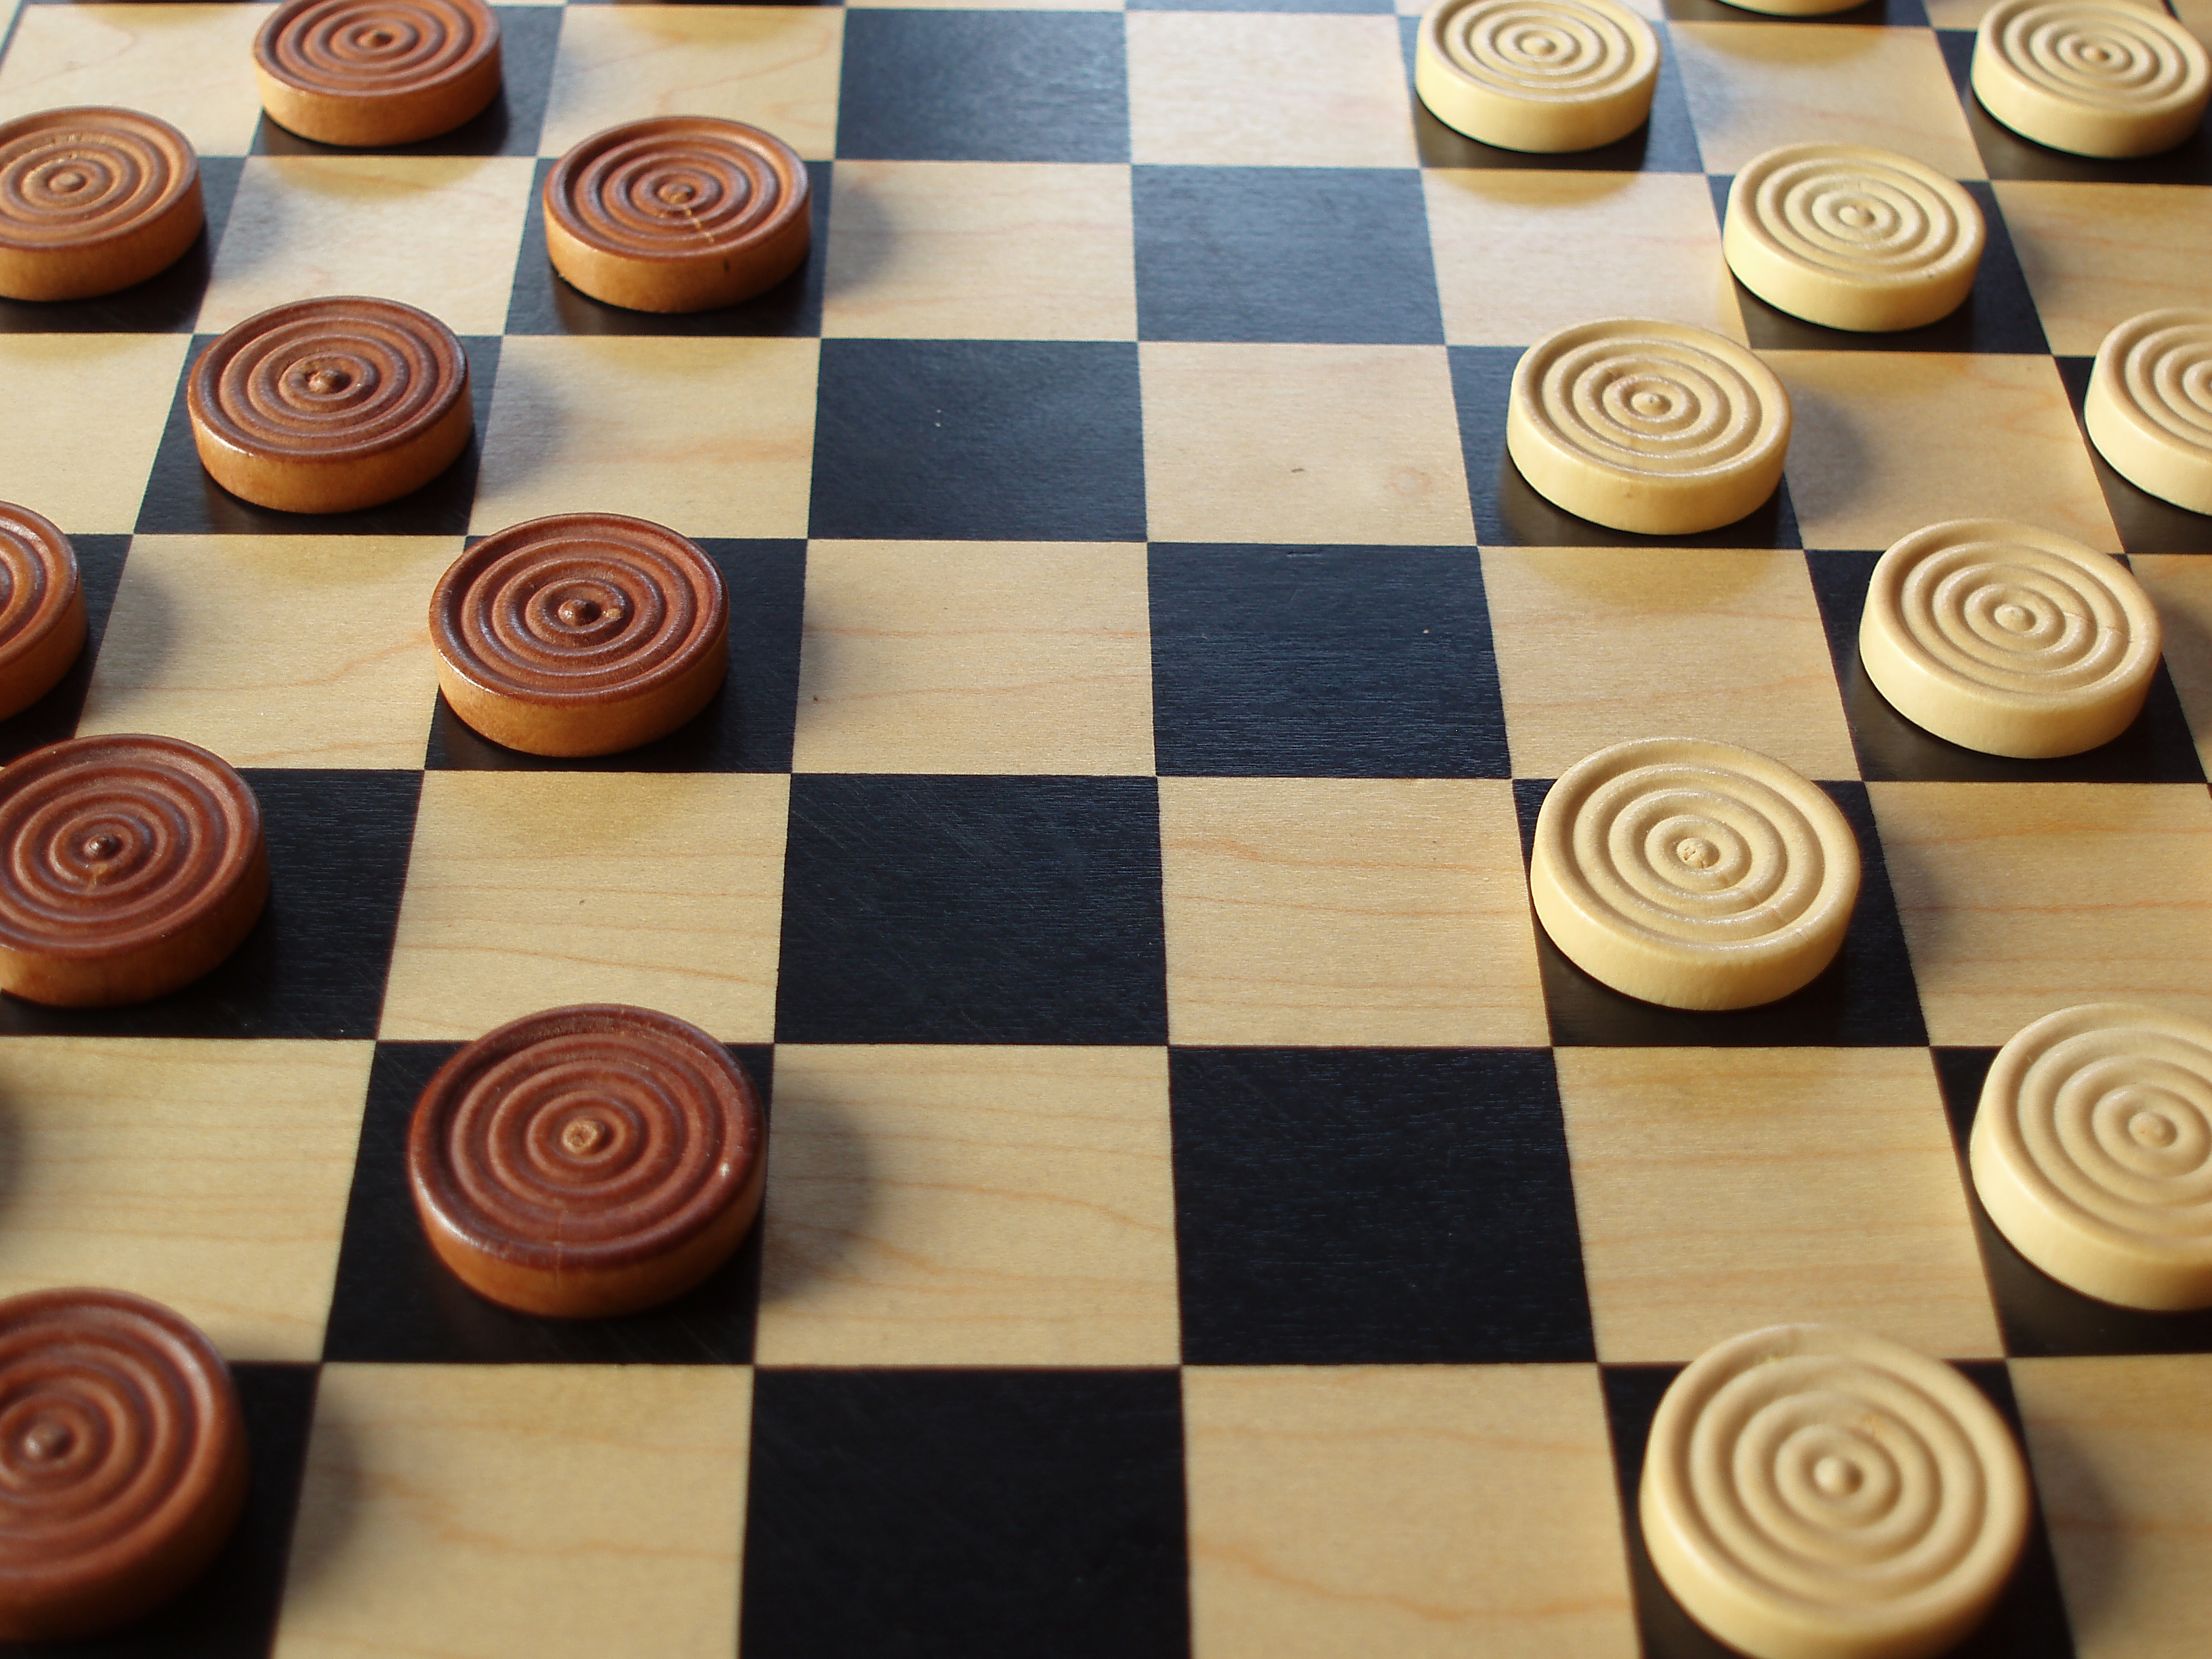 checkers game - DriverLayer Search Engine